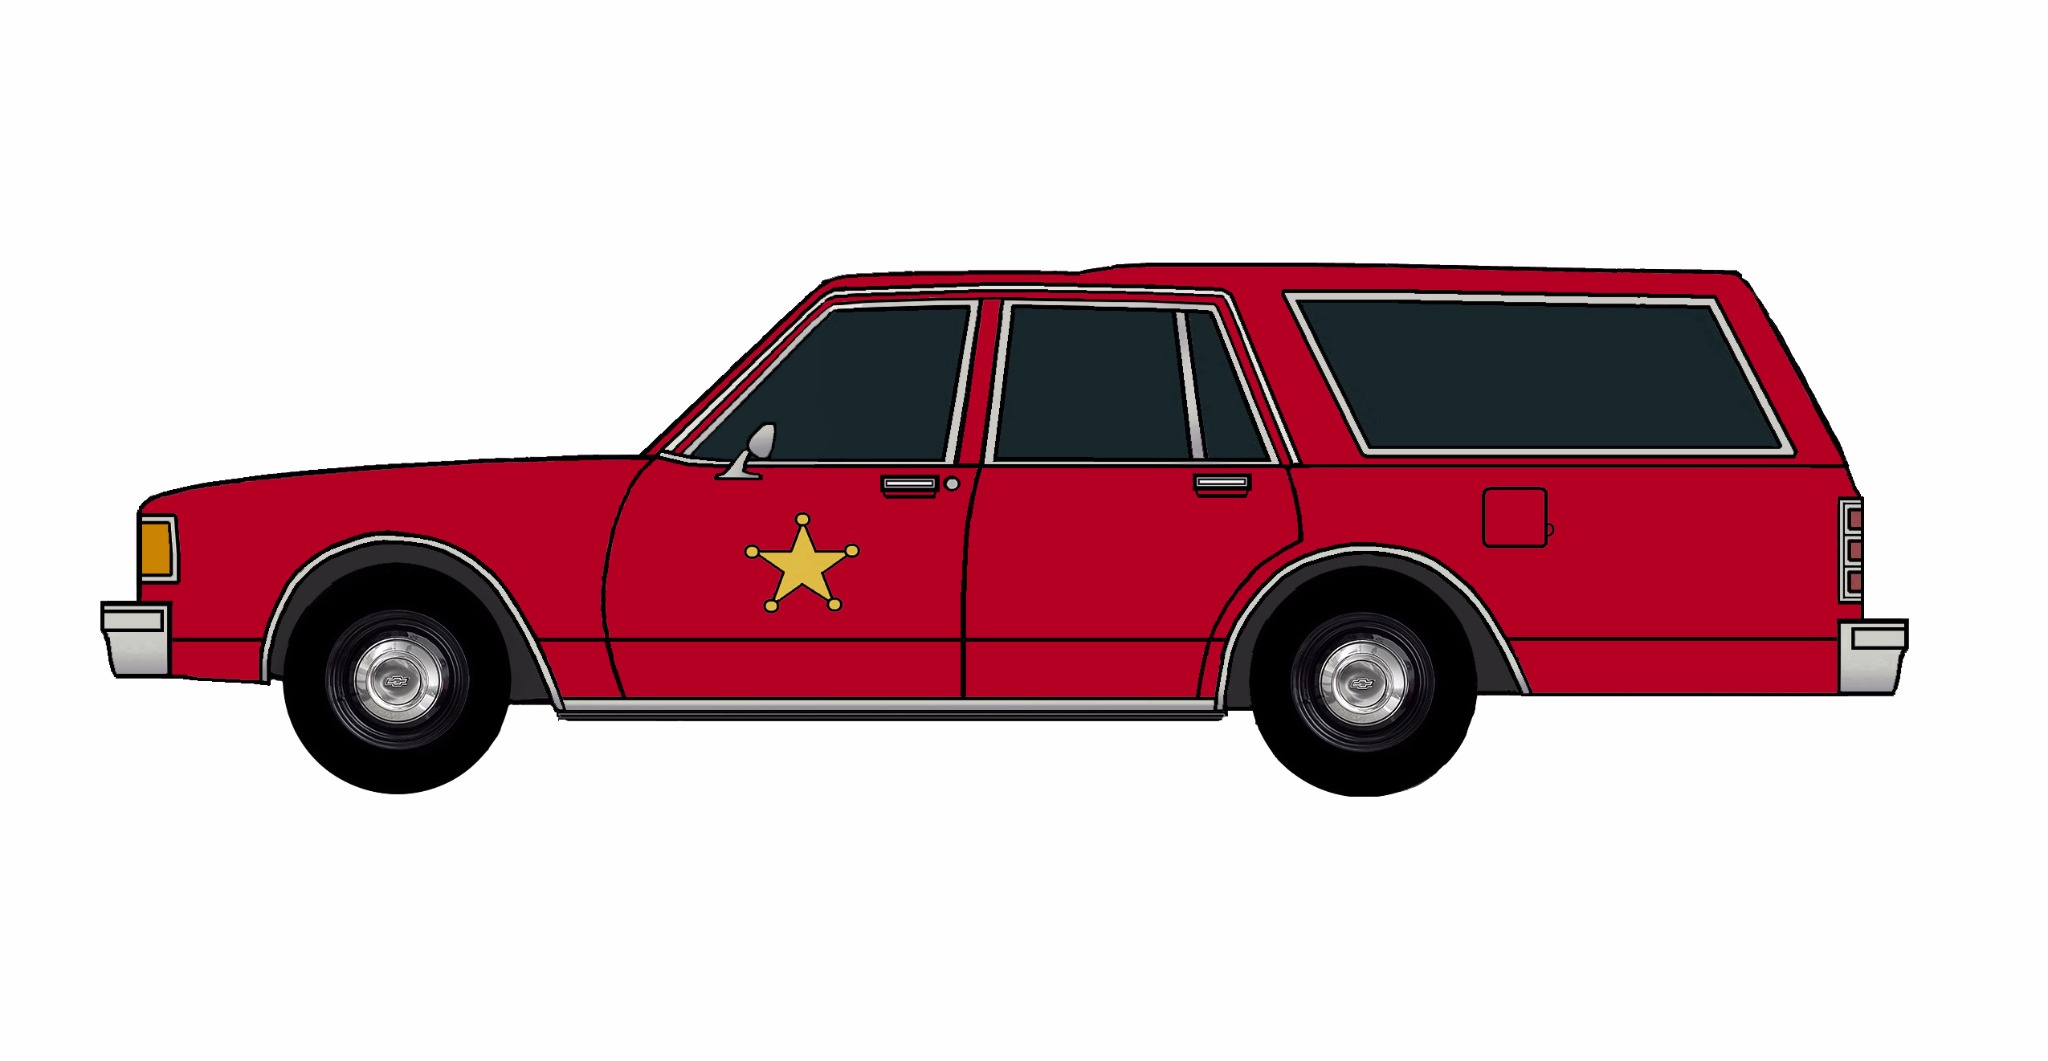 1986 Chevy Caprice 9C1 Wagon FIRE RED